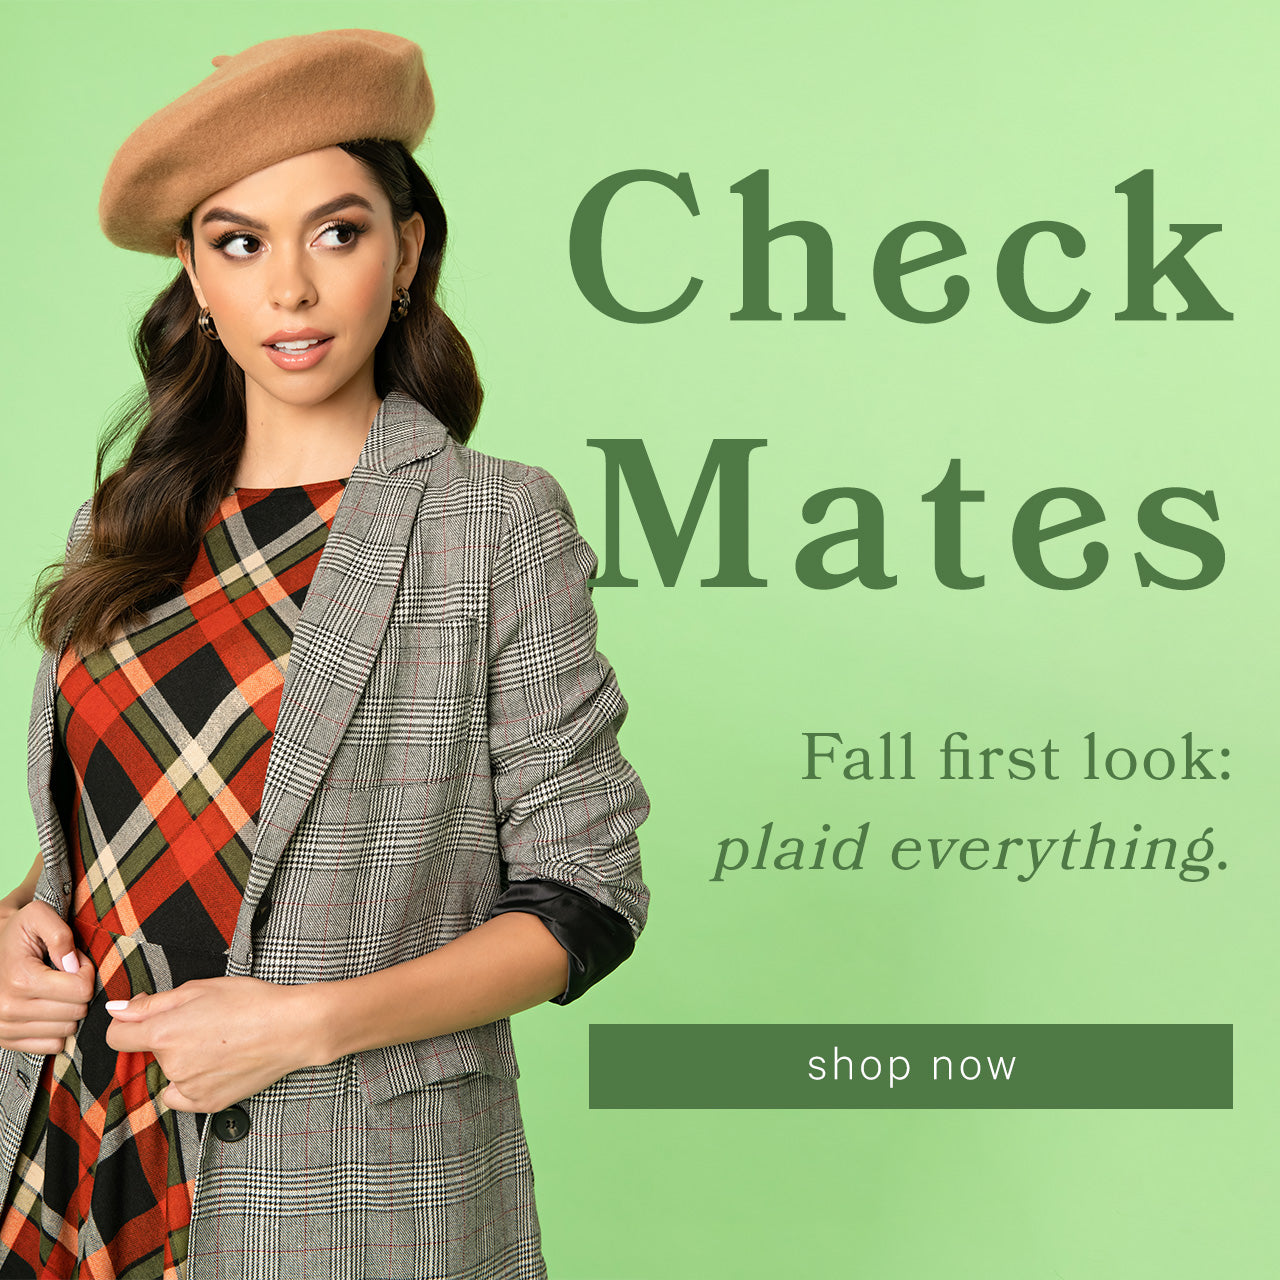 Unique Vintage — Shop New Arrivals